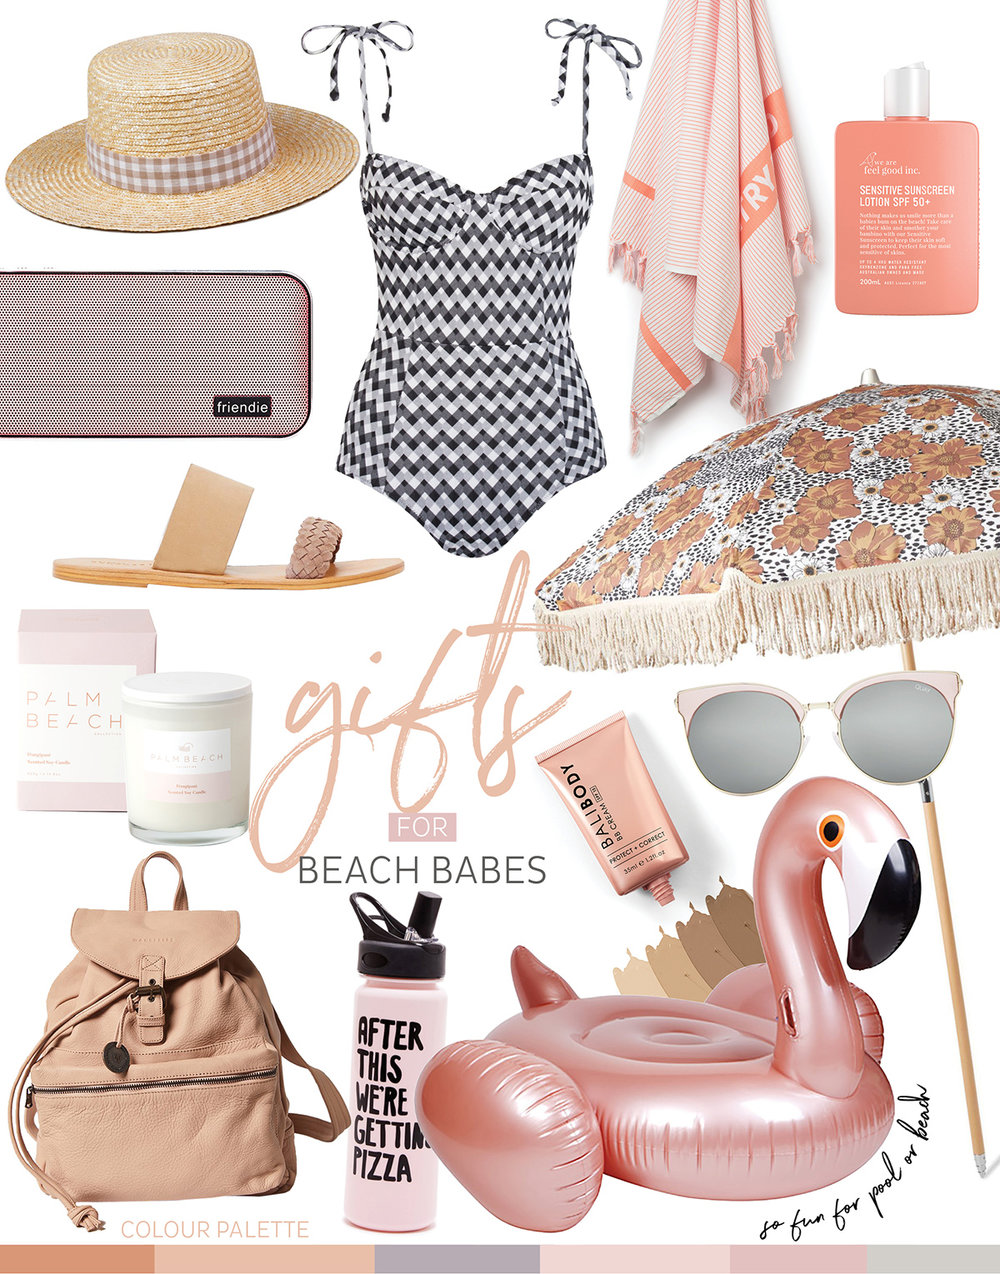 adore_home_magazine_christmas-gift-guide_beachbabe.jpg